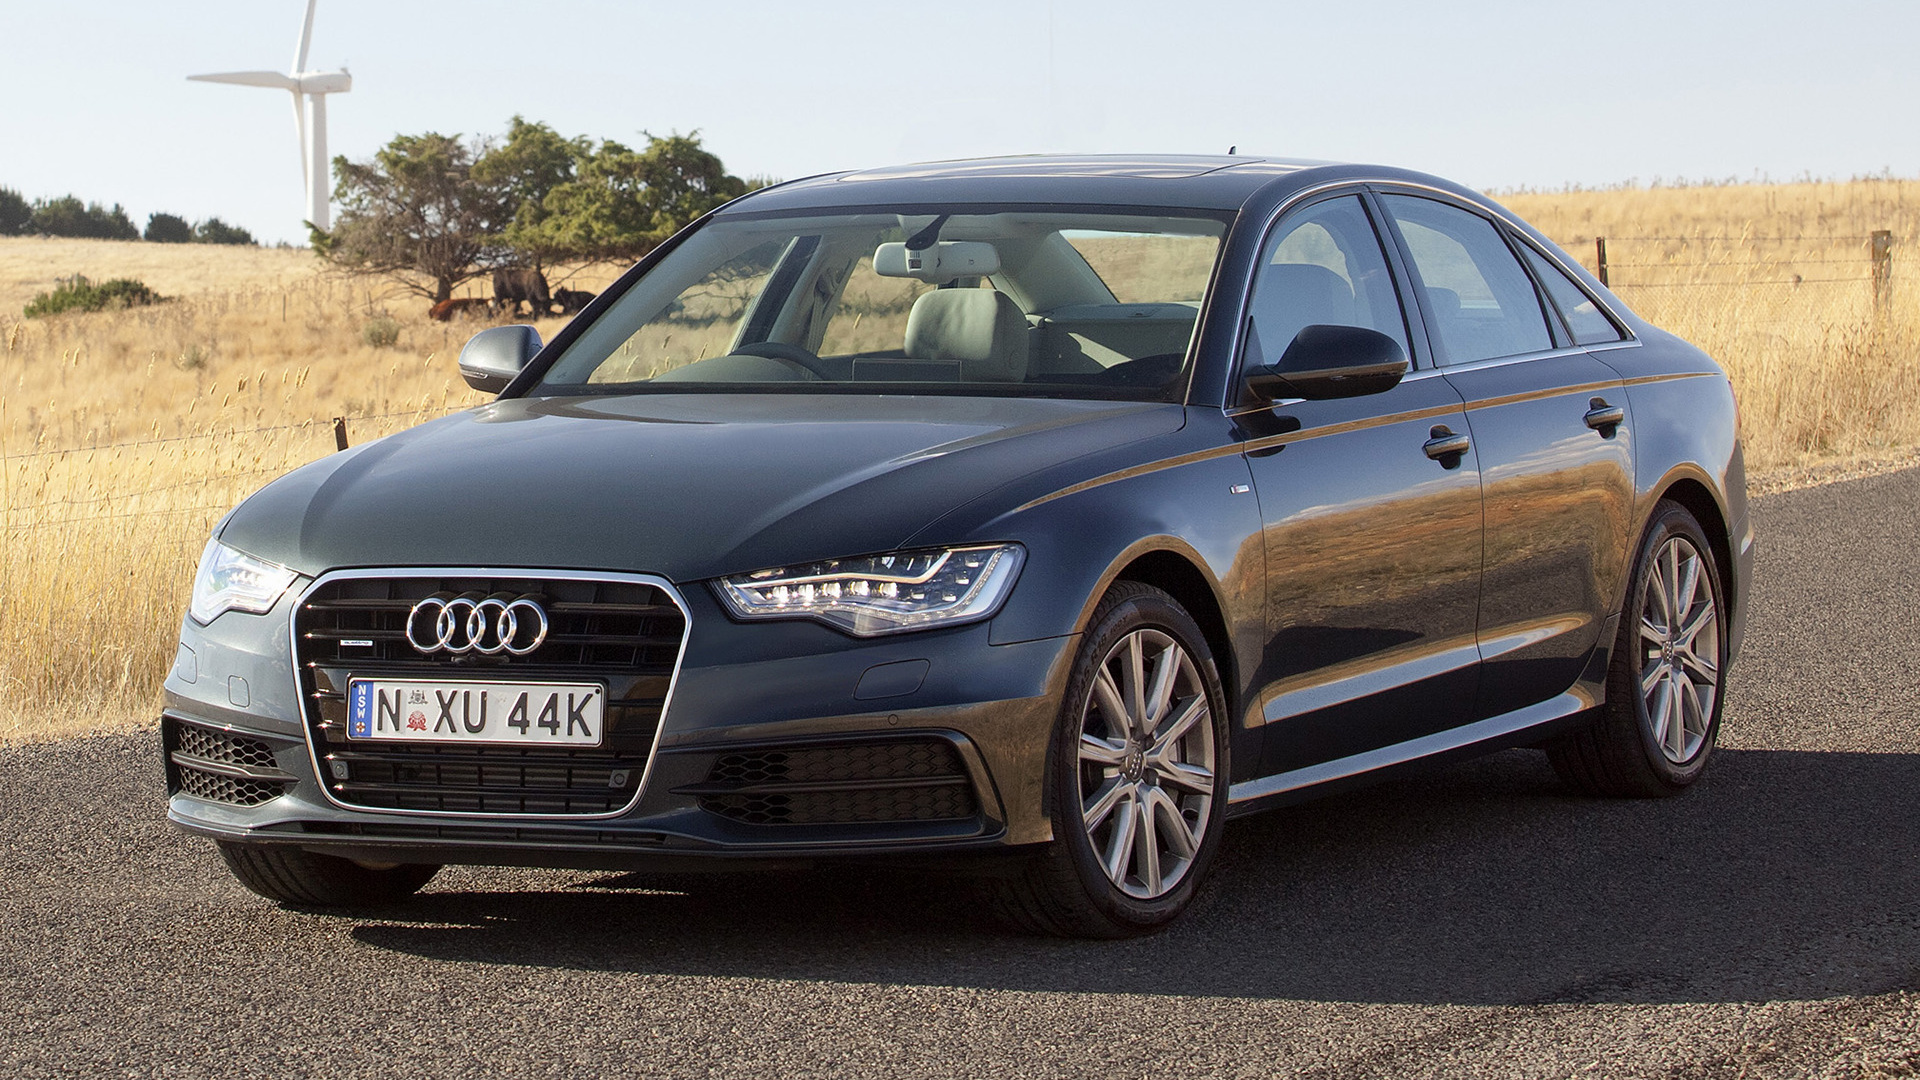 2011 Audi A6 Sedan S line (AU) - Wallpapers and HD Images ...